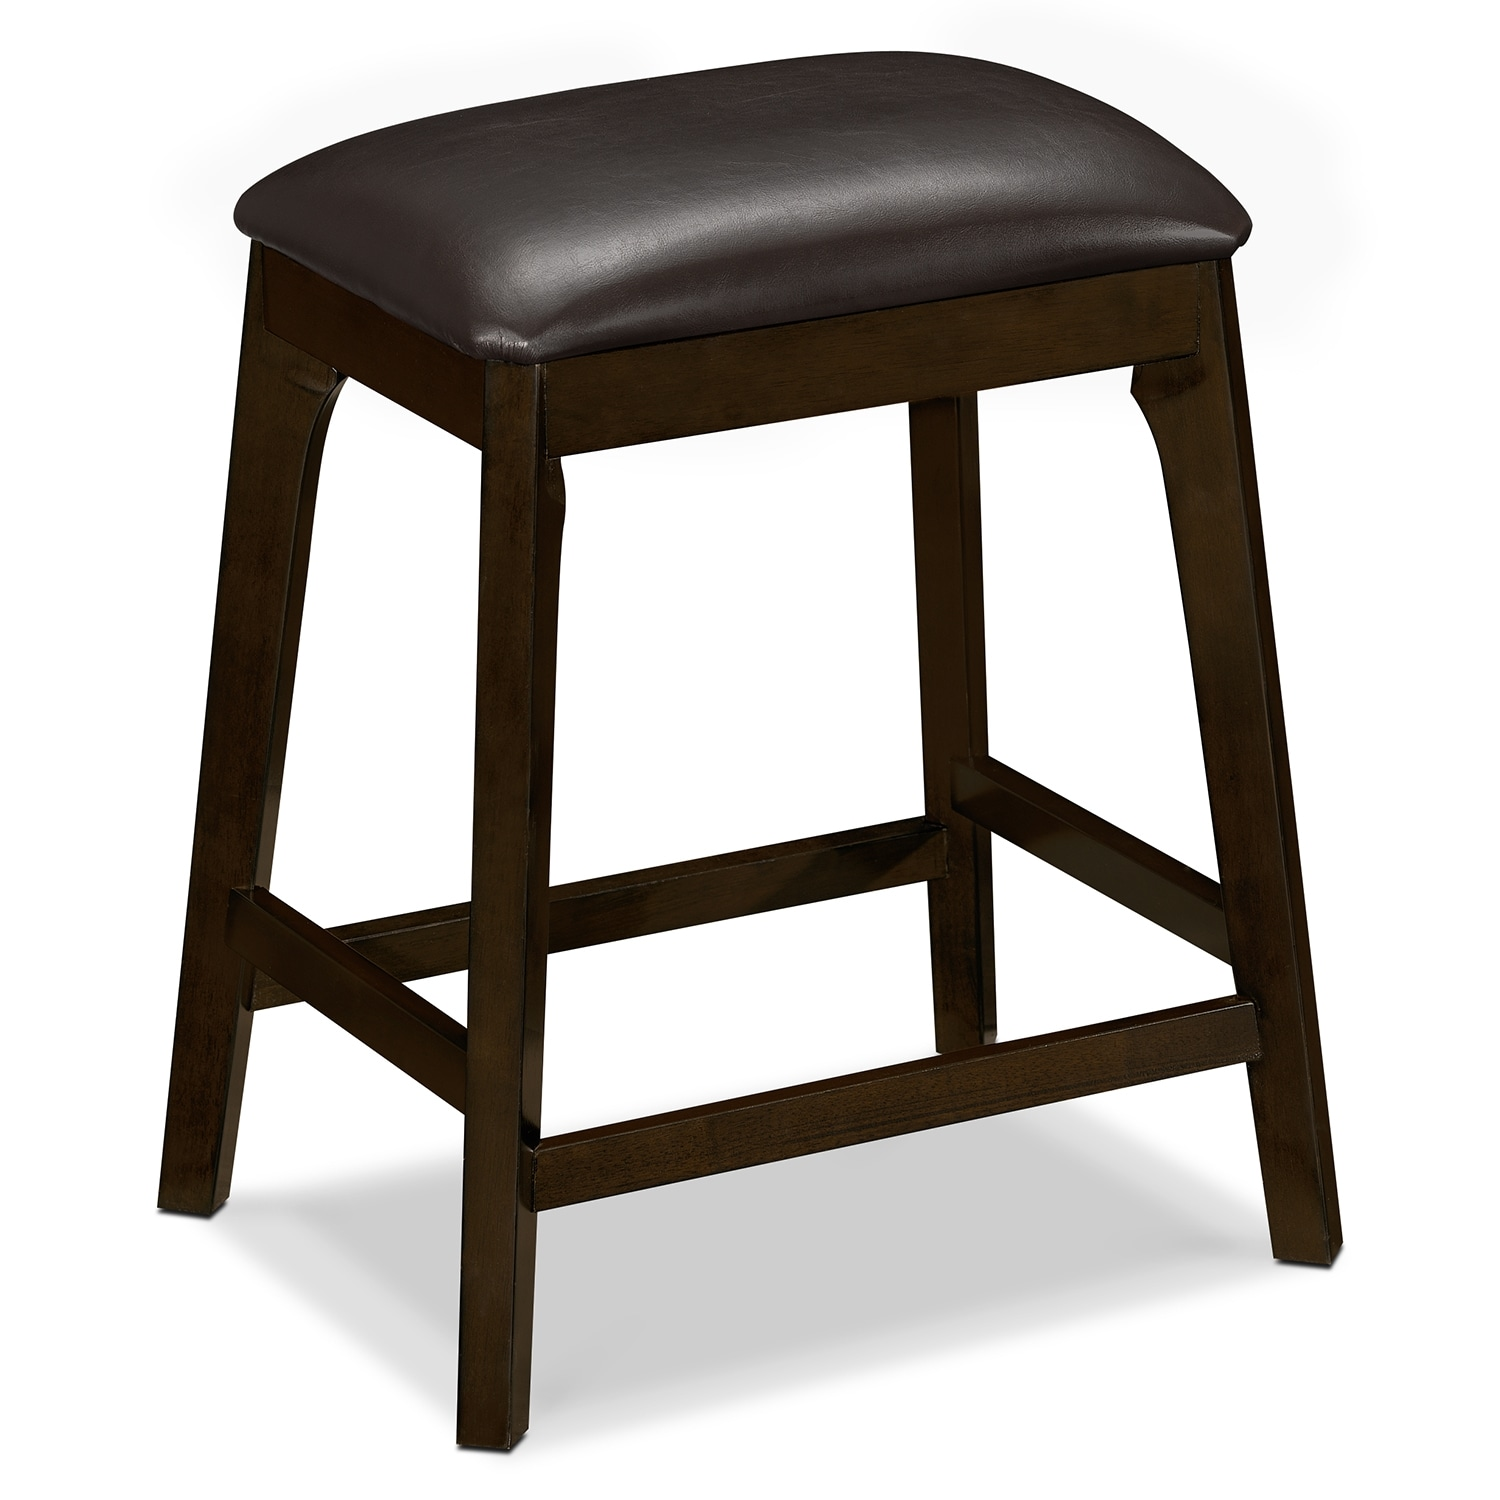 Dining Room Furniture - Mystic Backless Counter-Height Stool